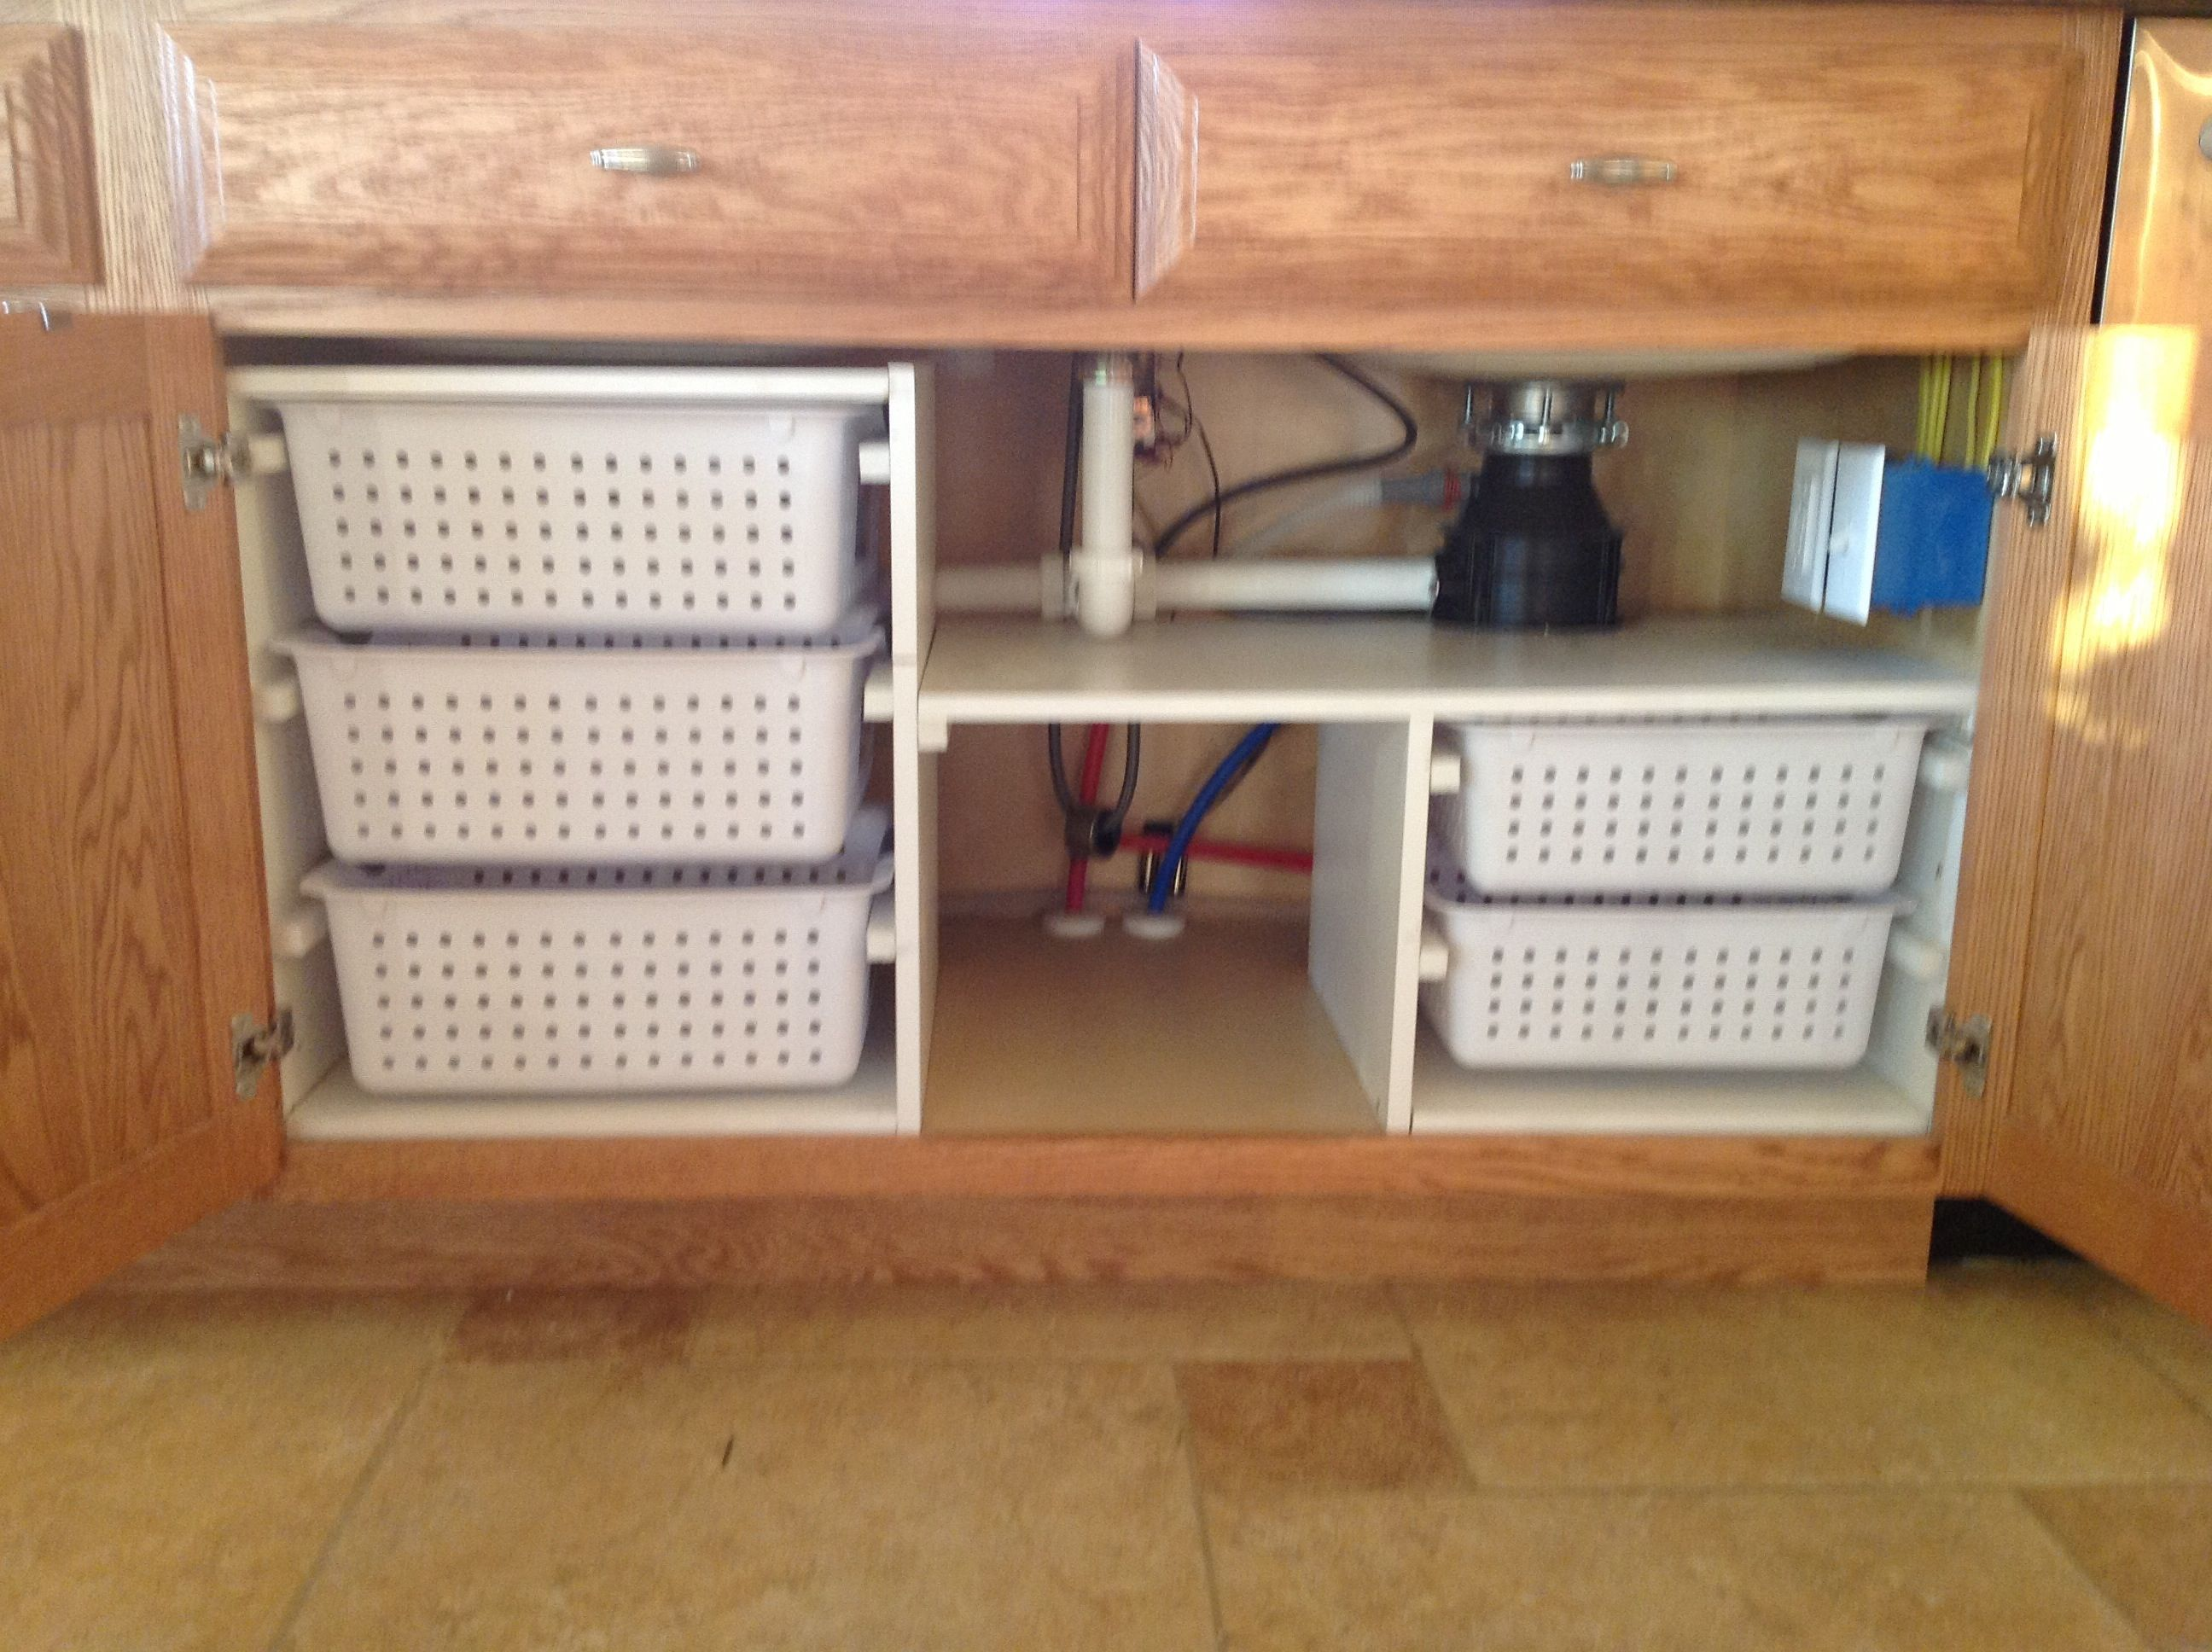 Under kitchen sink organization my husband built for - Bathroom vanity under sink organizer ...